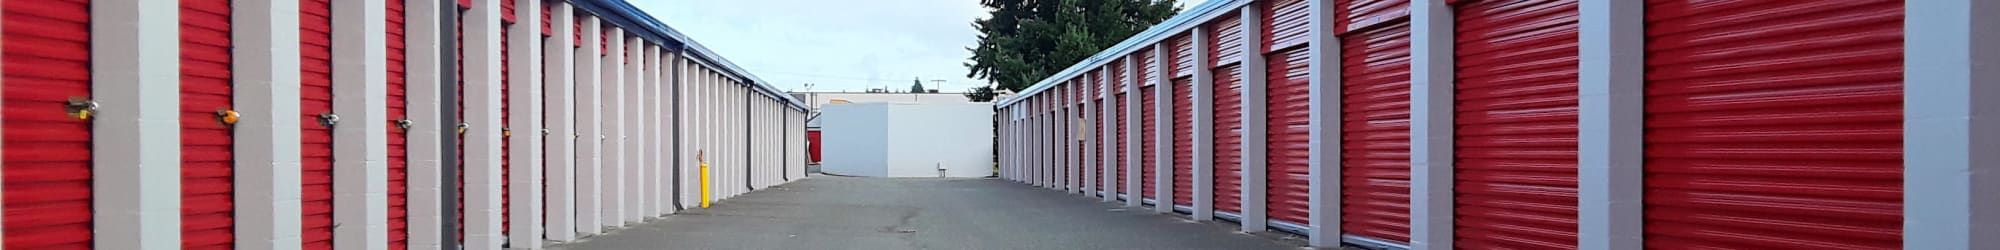 Contact us today at Trojan Storage in Everett, Washington